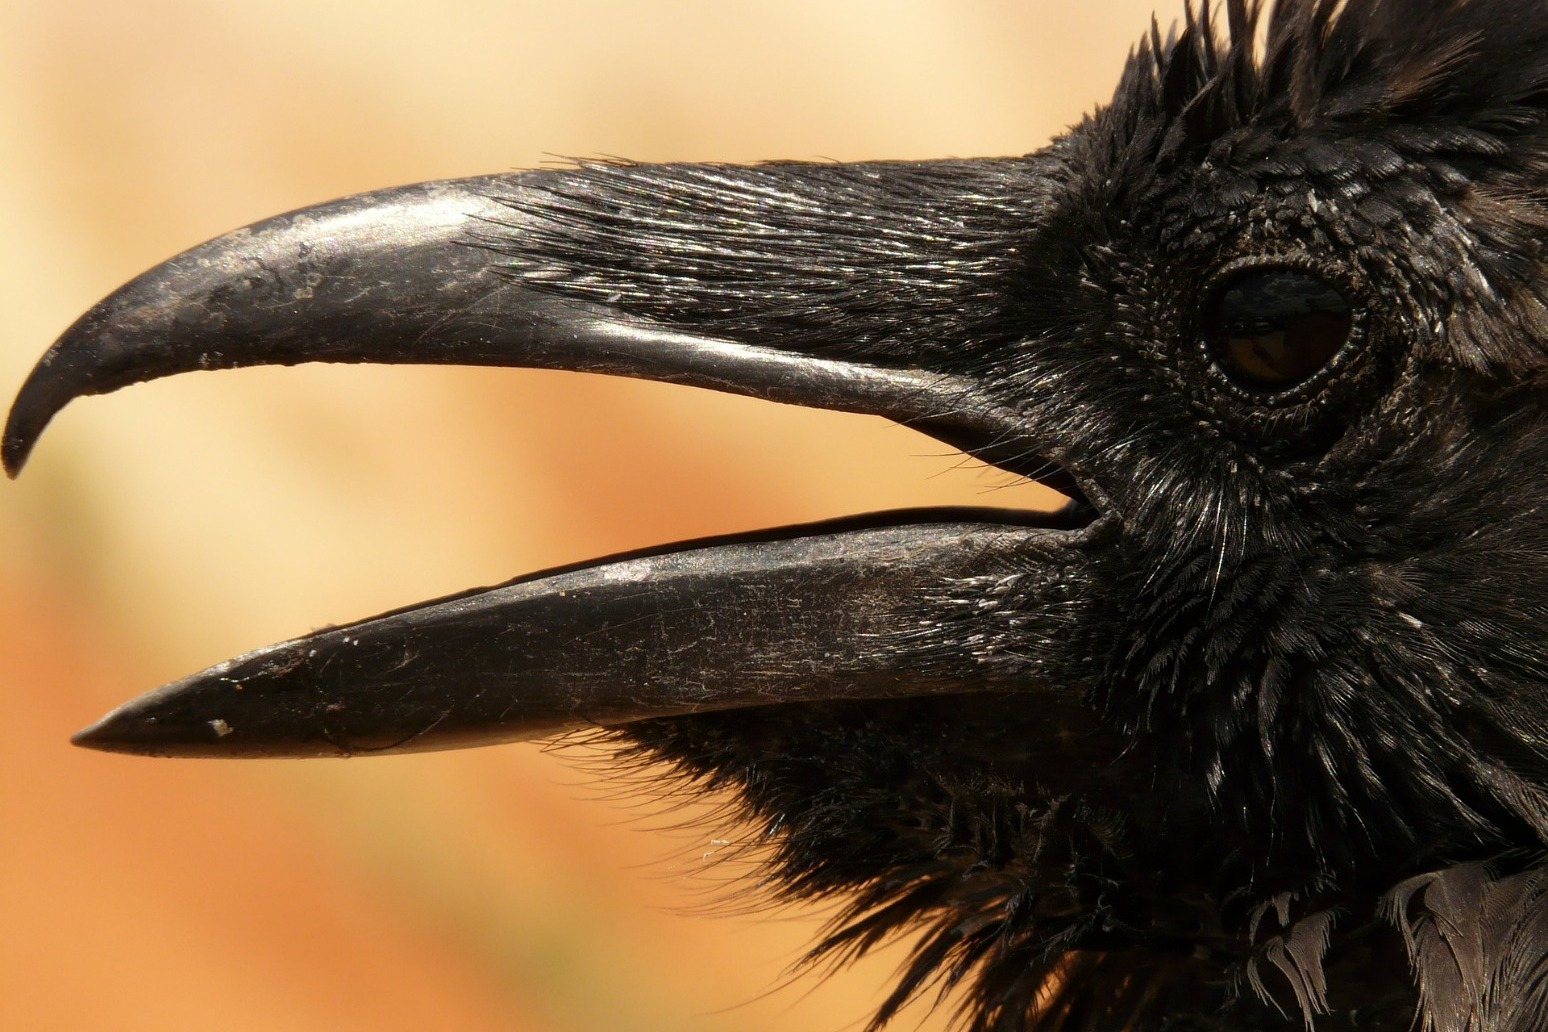 Raven chicks in the Tower ward off prophecy of doom for Brexit Britain